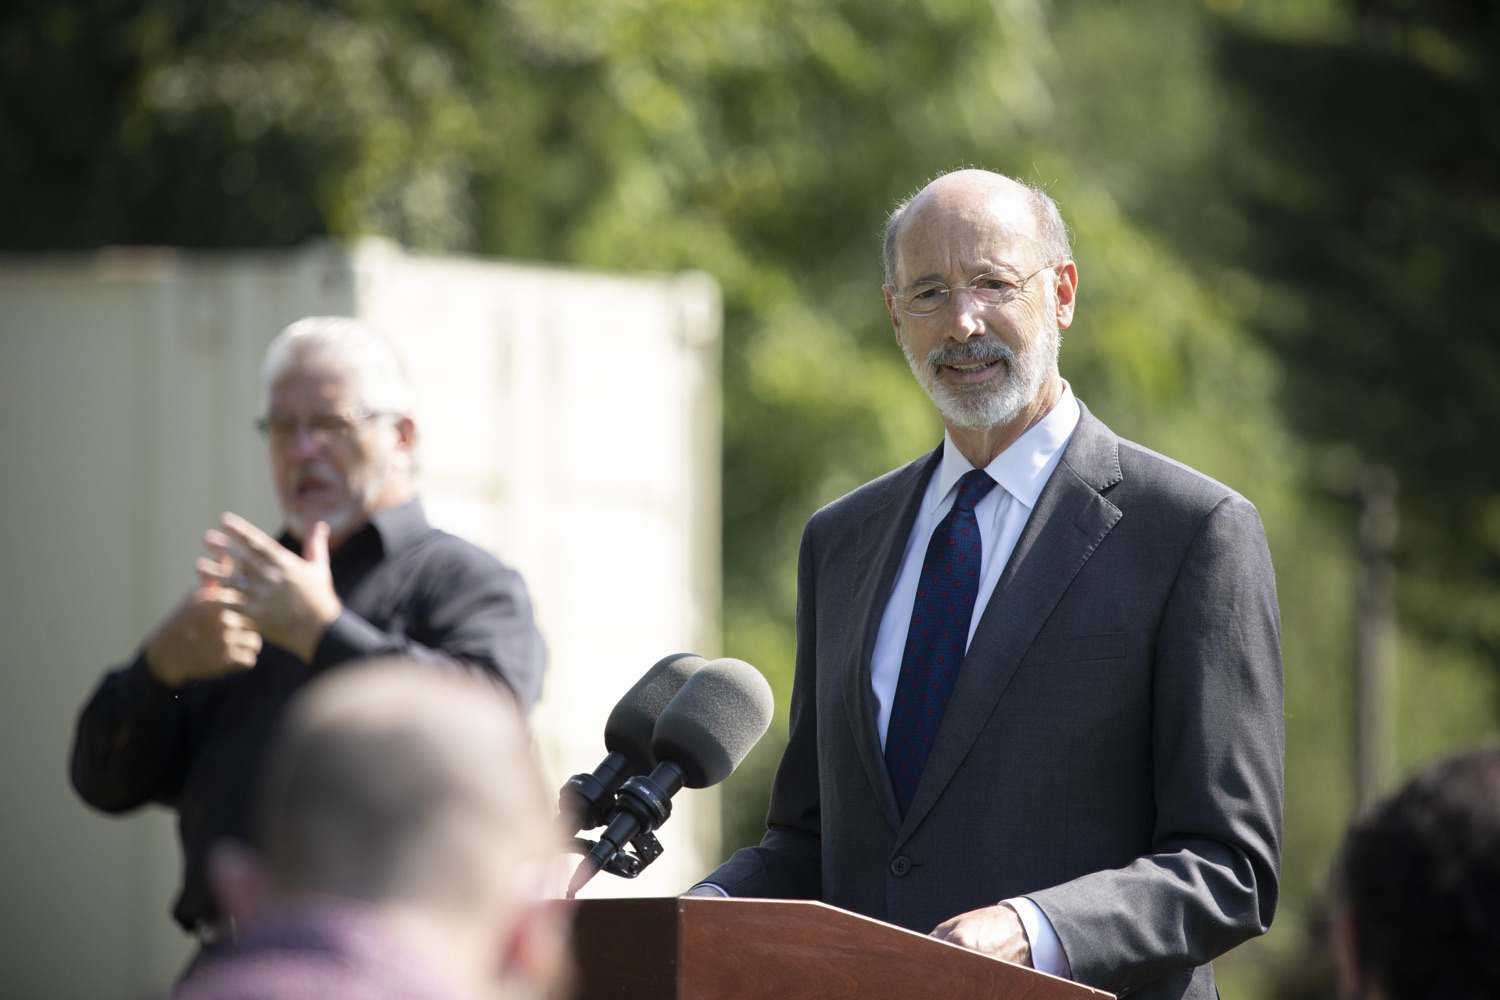 "<a href=""https://filesource.wostreaming.net/commonwealthofpa/photo/18248_gov_evictions_dz_029.jpg"" target=""_blank"">⇣ Download Photo<br></a>Pennsylvania Governor Tom Wolf speaking to the press. With rent and mortgage debt mounting for hundreds of thousands of Pennsylvanians, Governor Tom Wolf is calling on the General Assembly to fix a state relief program to prevent many families from becoming homeless and enact a moratorium on evictions and foreclosures until the end of the year. The governor was joined today by legislators and housing advocates at a press conference in Lancaster County. Harrisburg, PA  Sept. 8, 2020"